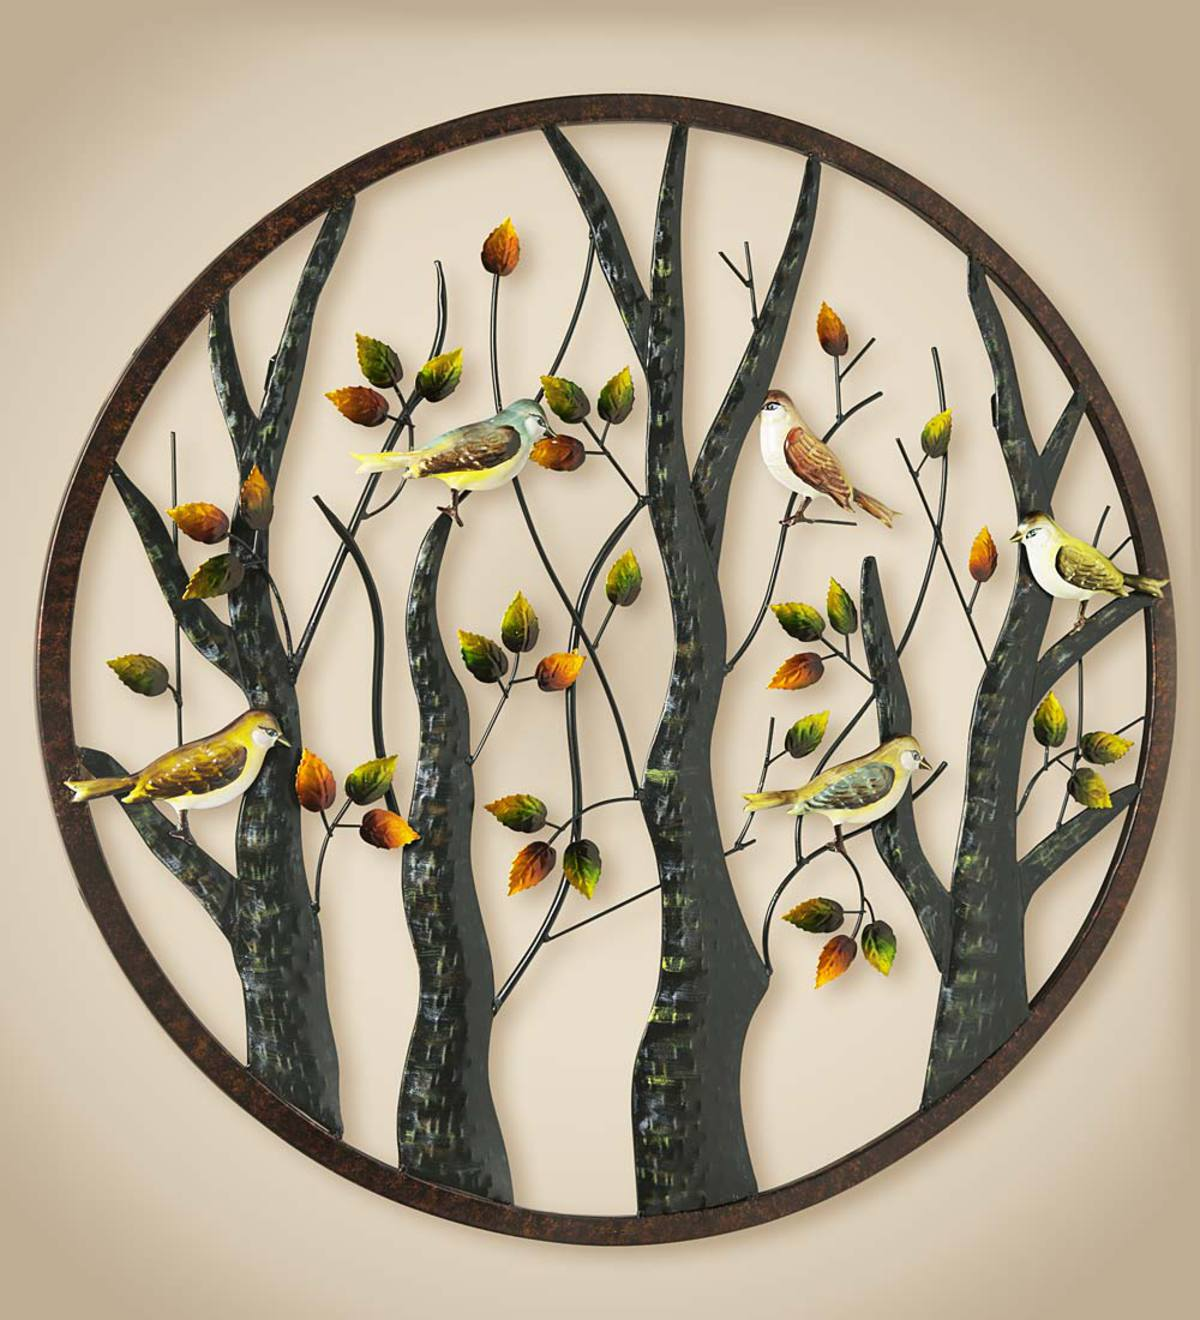 Metal Wall Art With Colorful Birds And Trees